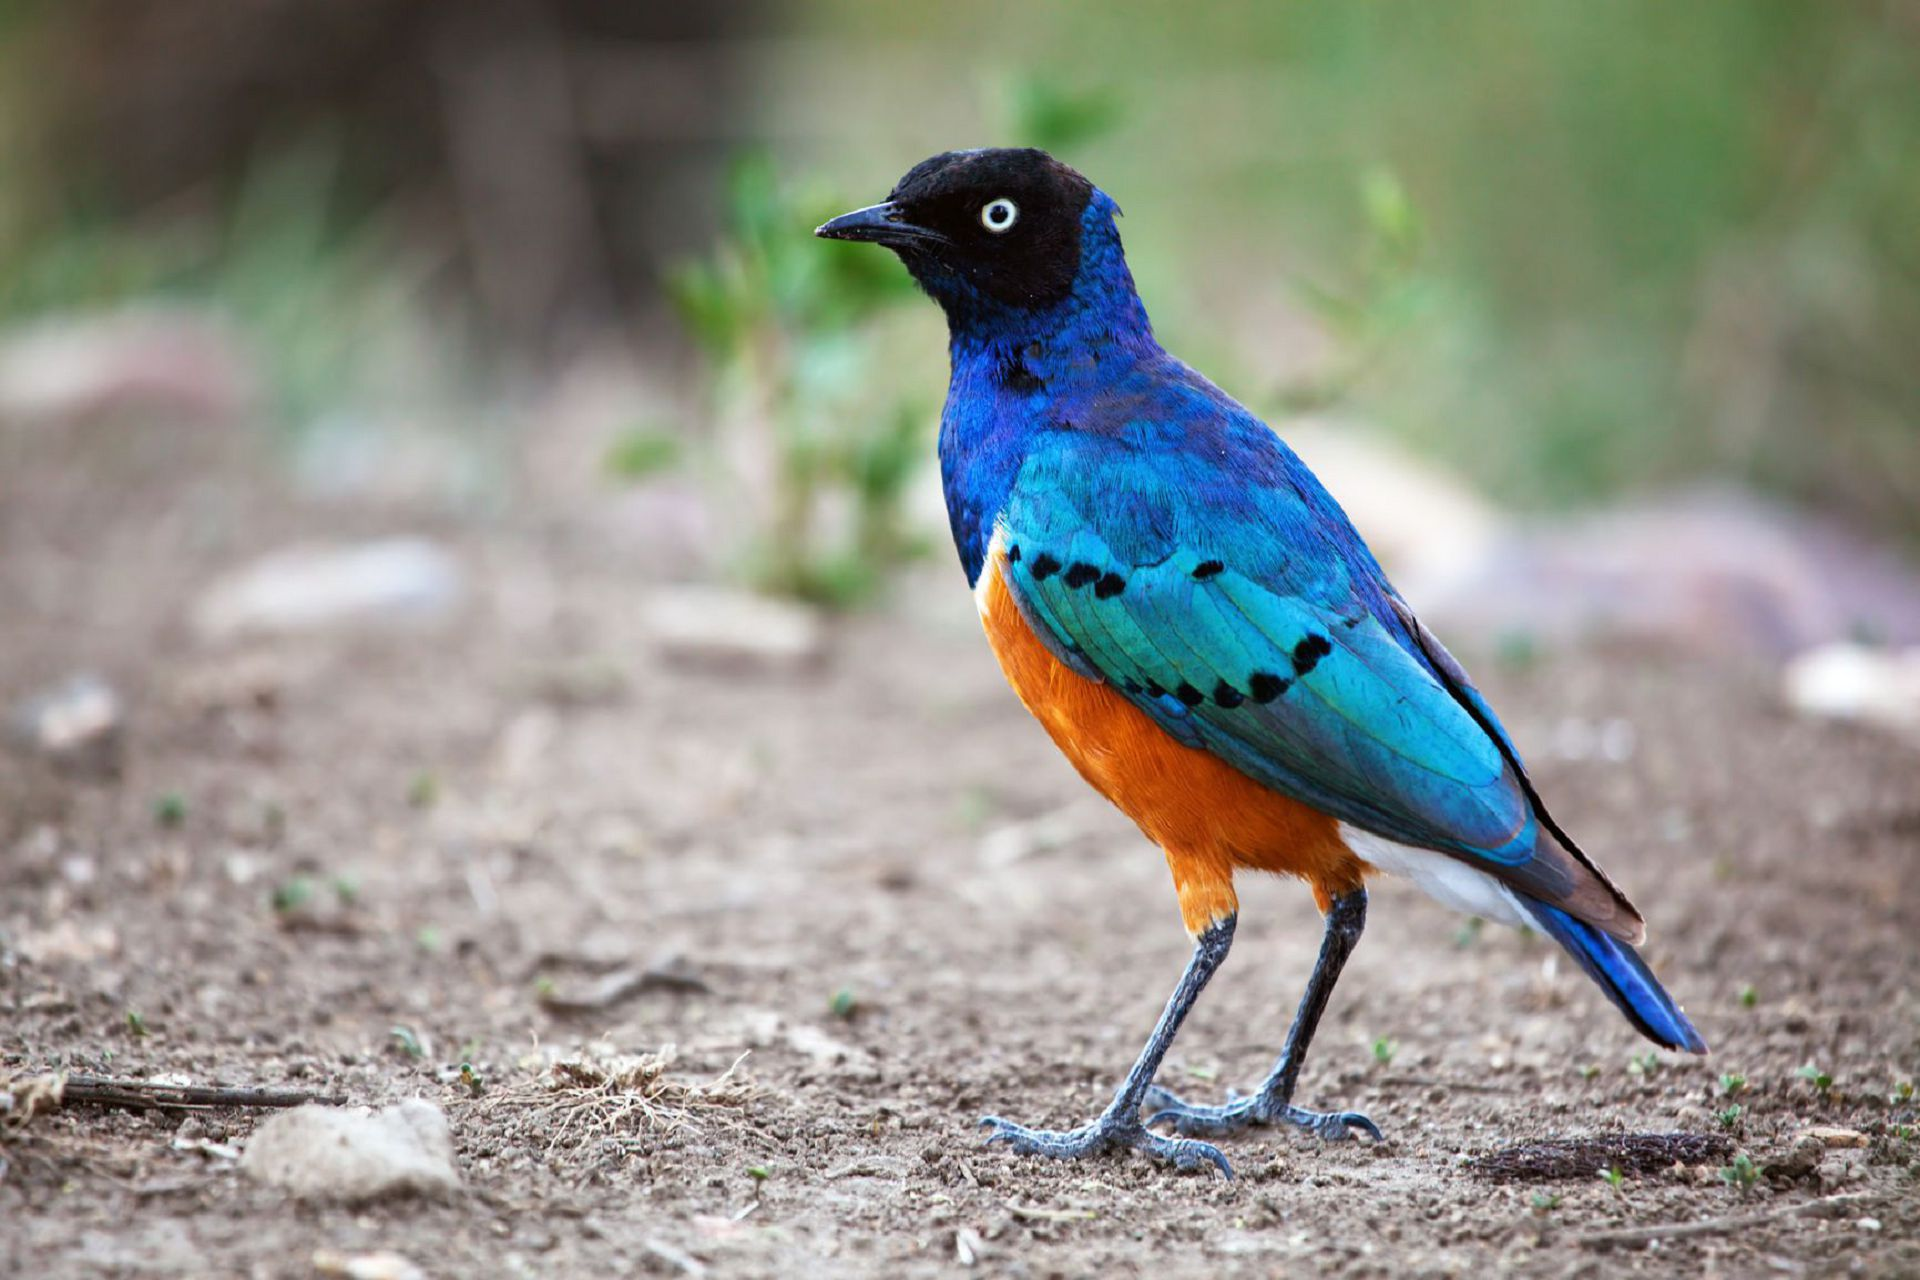 Superb Starling Bird In Tanzania, Africa